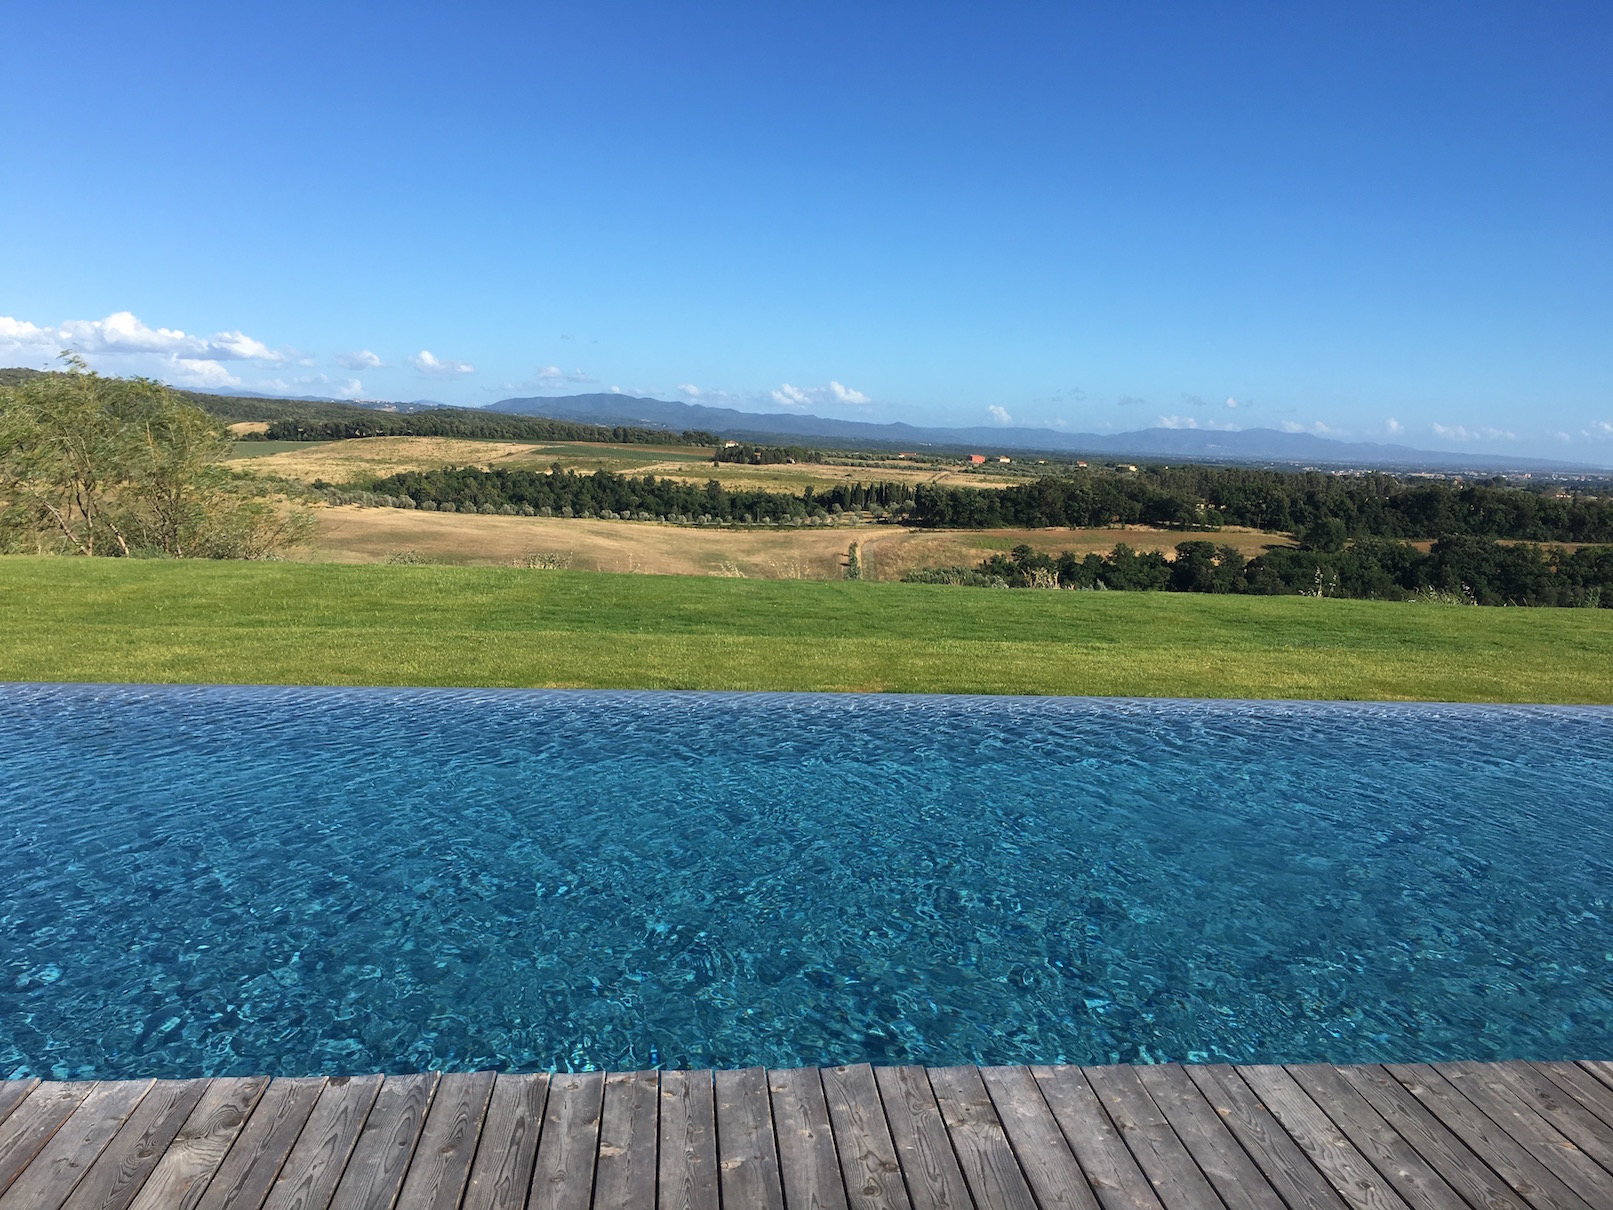 This is the paradisiacal infinity pool that is also part of the farm. I alternated days composing here on the farm with days of driving adventures through the Tuscan hillsides. But that's a tale for another blog!